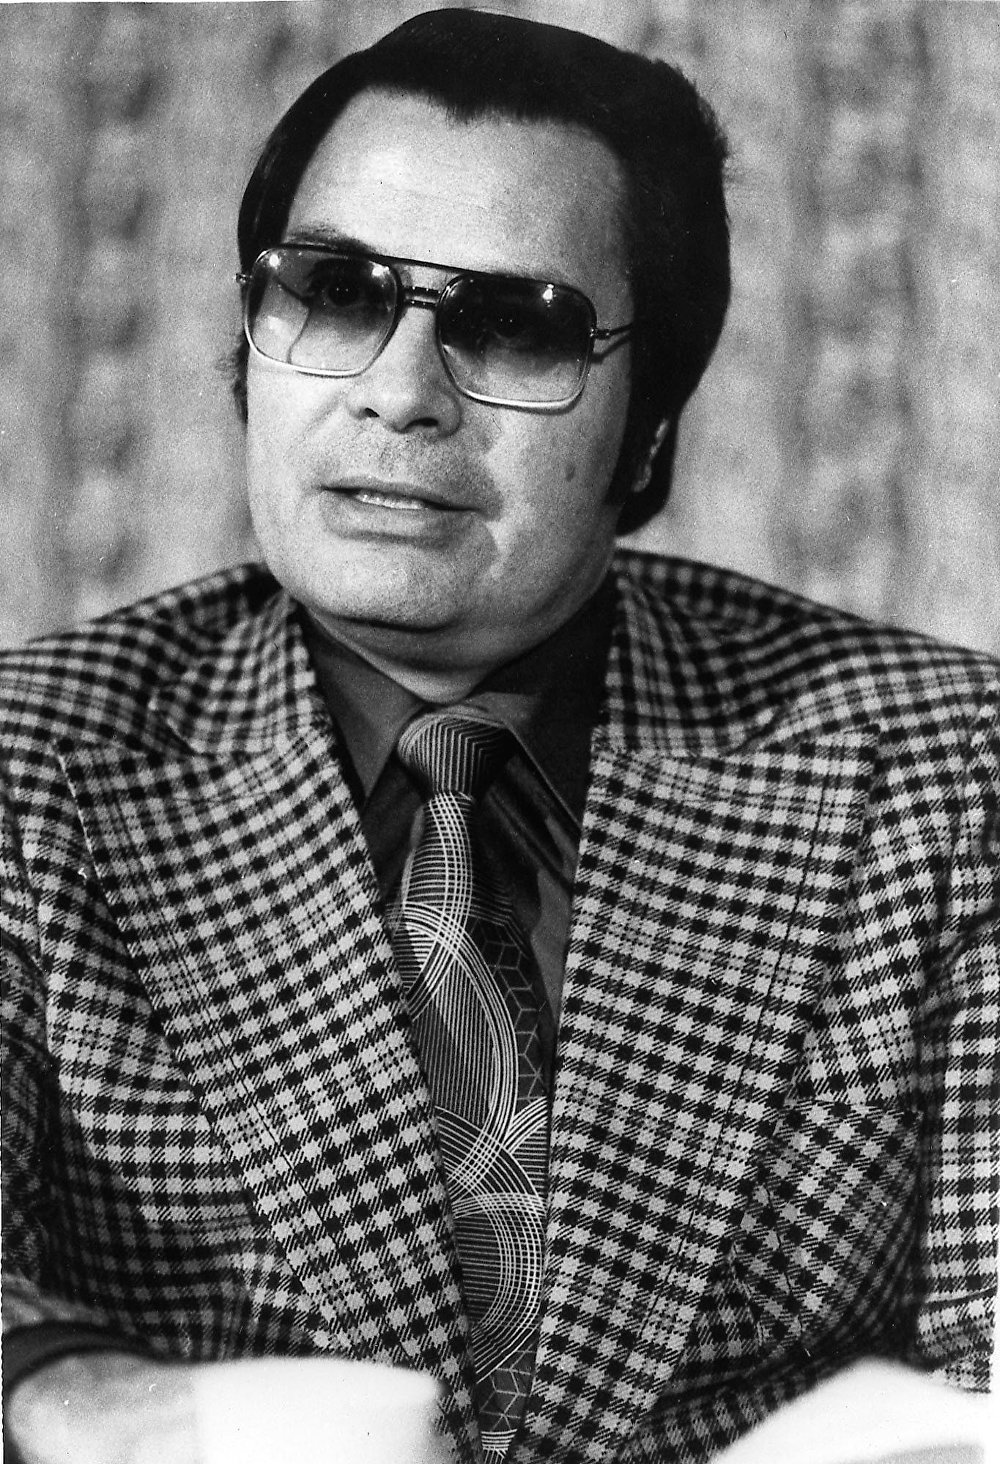 The Reverend Jim Jones, who persuaded more than 900 people to commit suicide at Jonestown